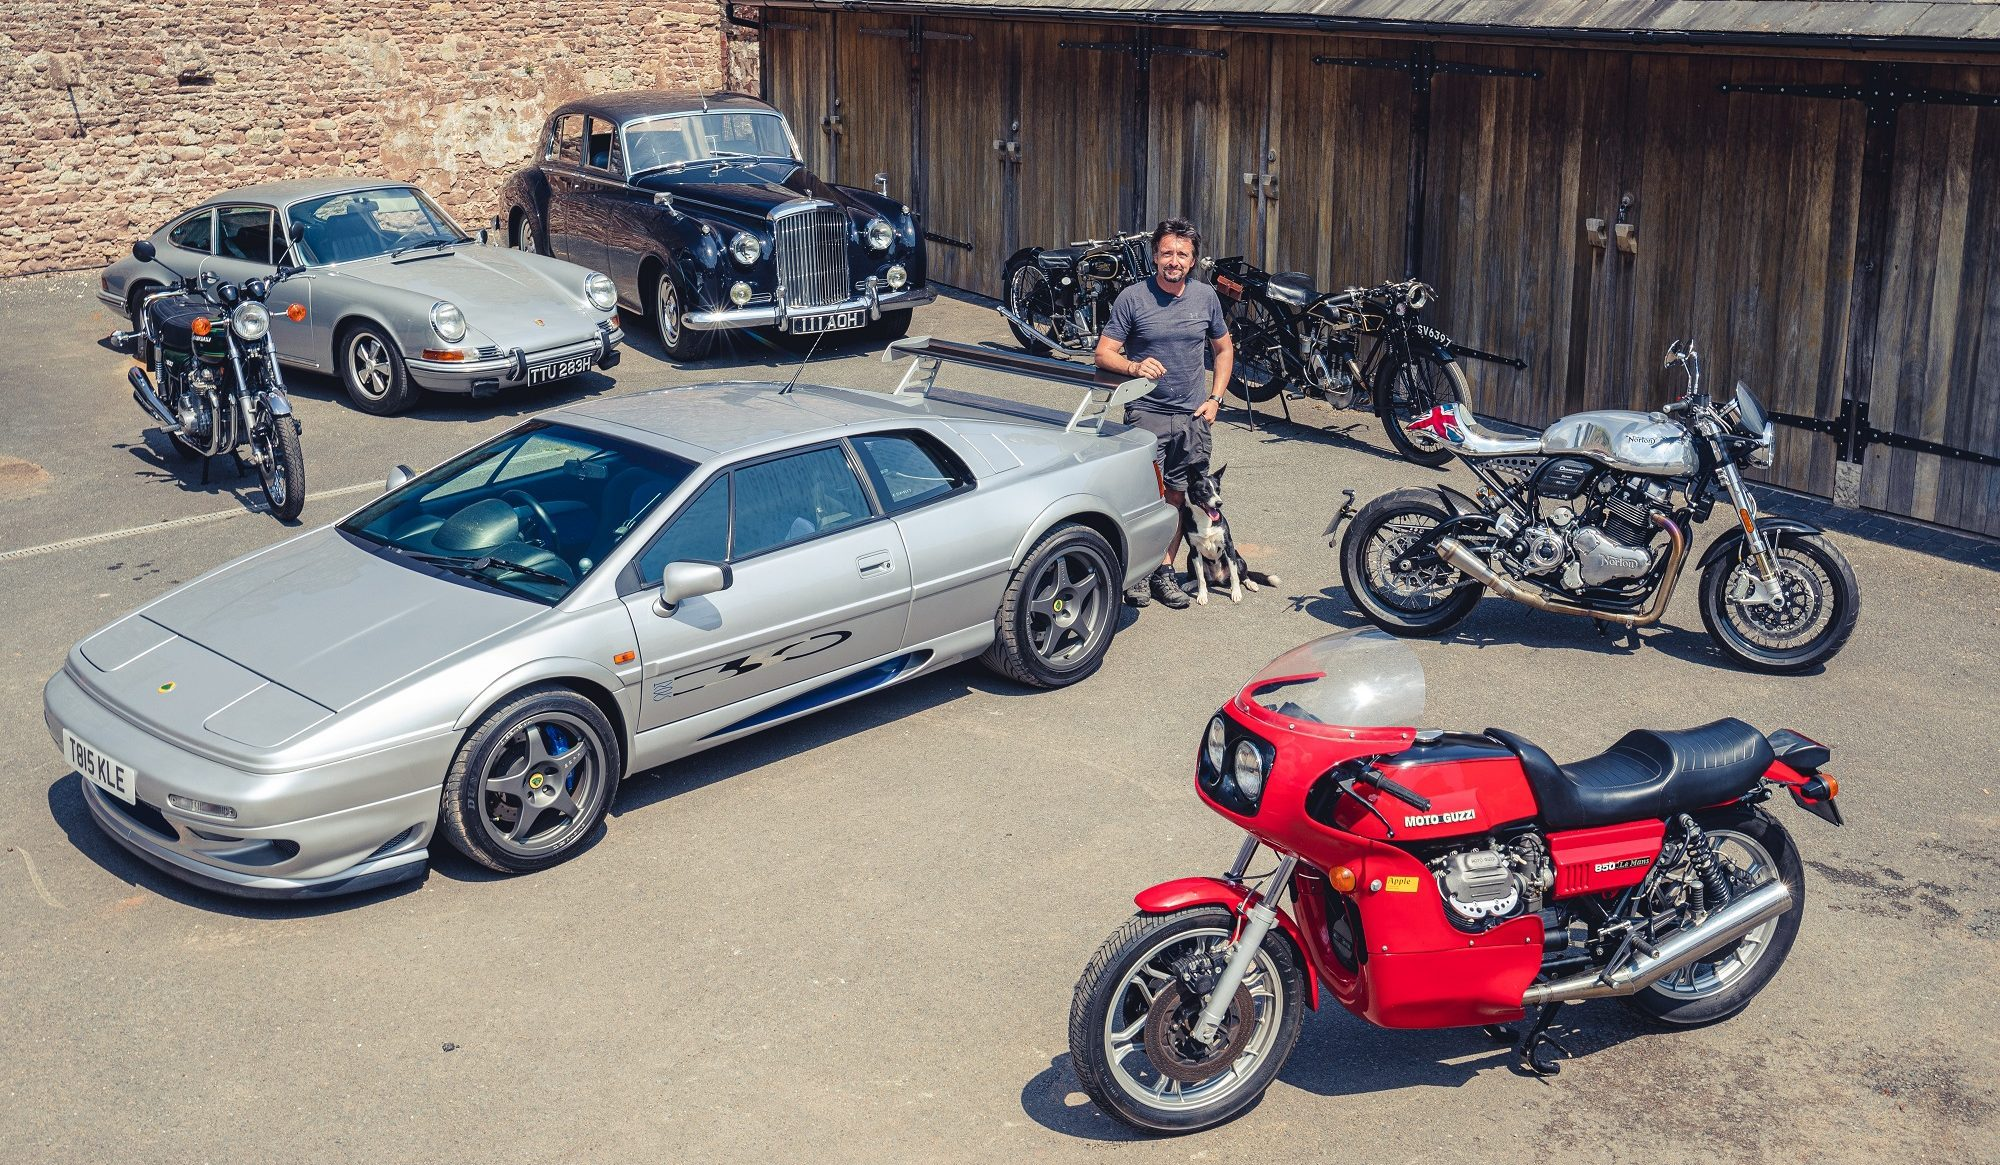 The famous Top Gear and The Grand Tour presenter has decided to sell eight cars and motorcycles at an auction set to commence next month.